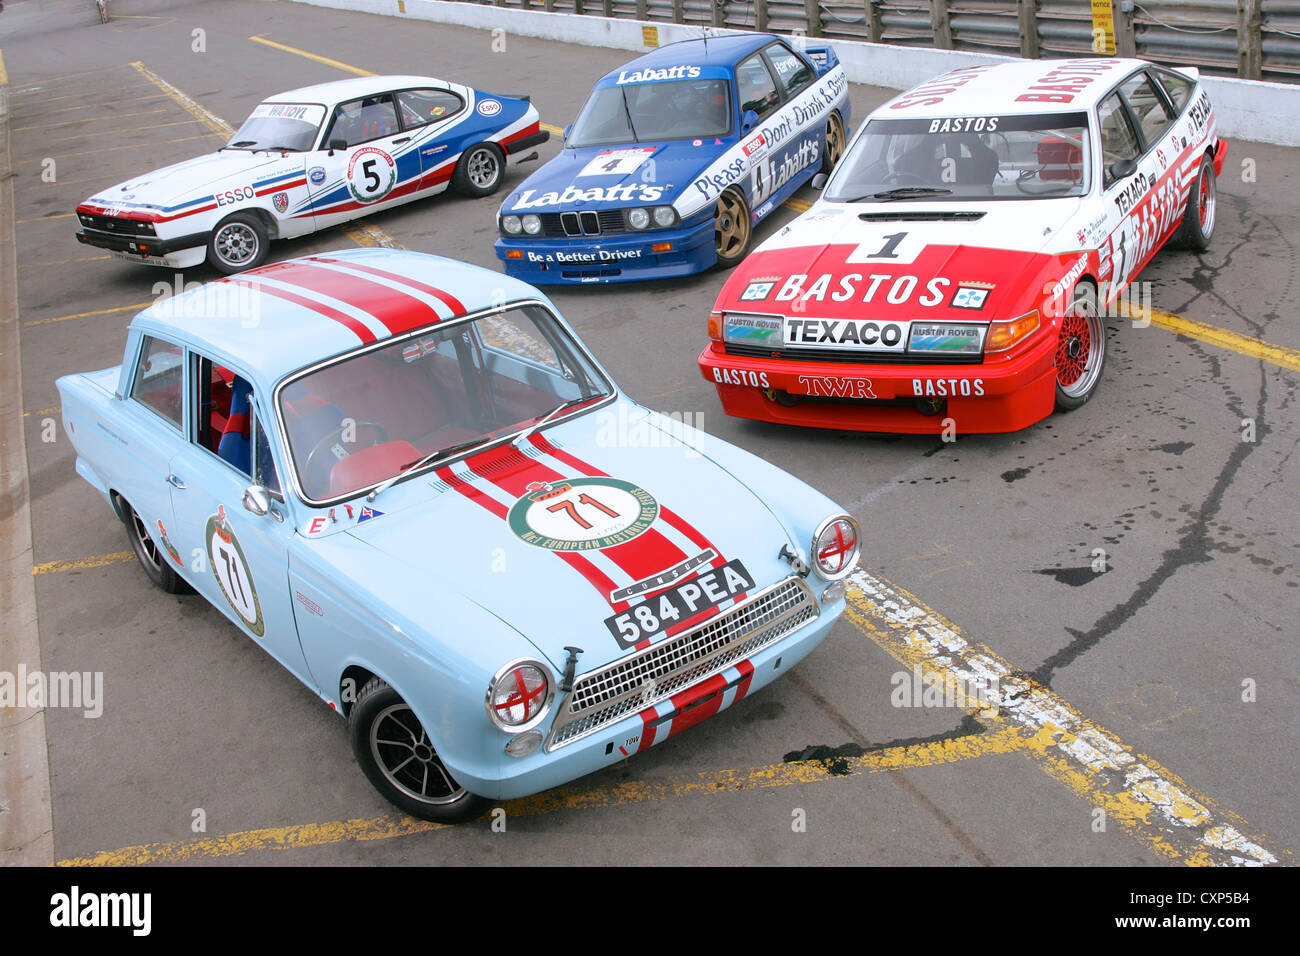 Group Photograph Of Classic Race Cars Stock Photo Alamy